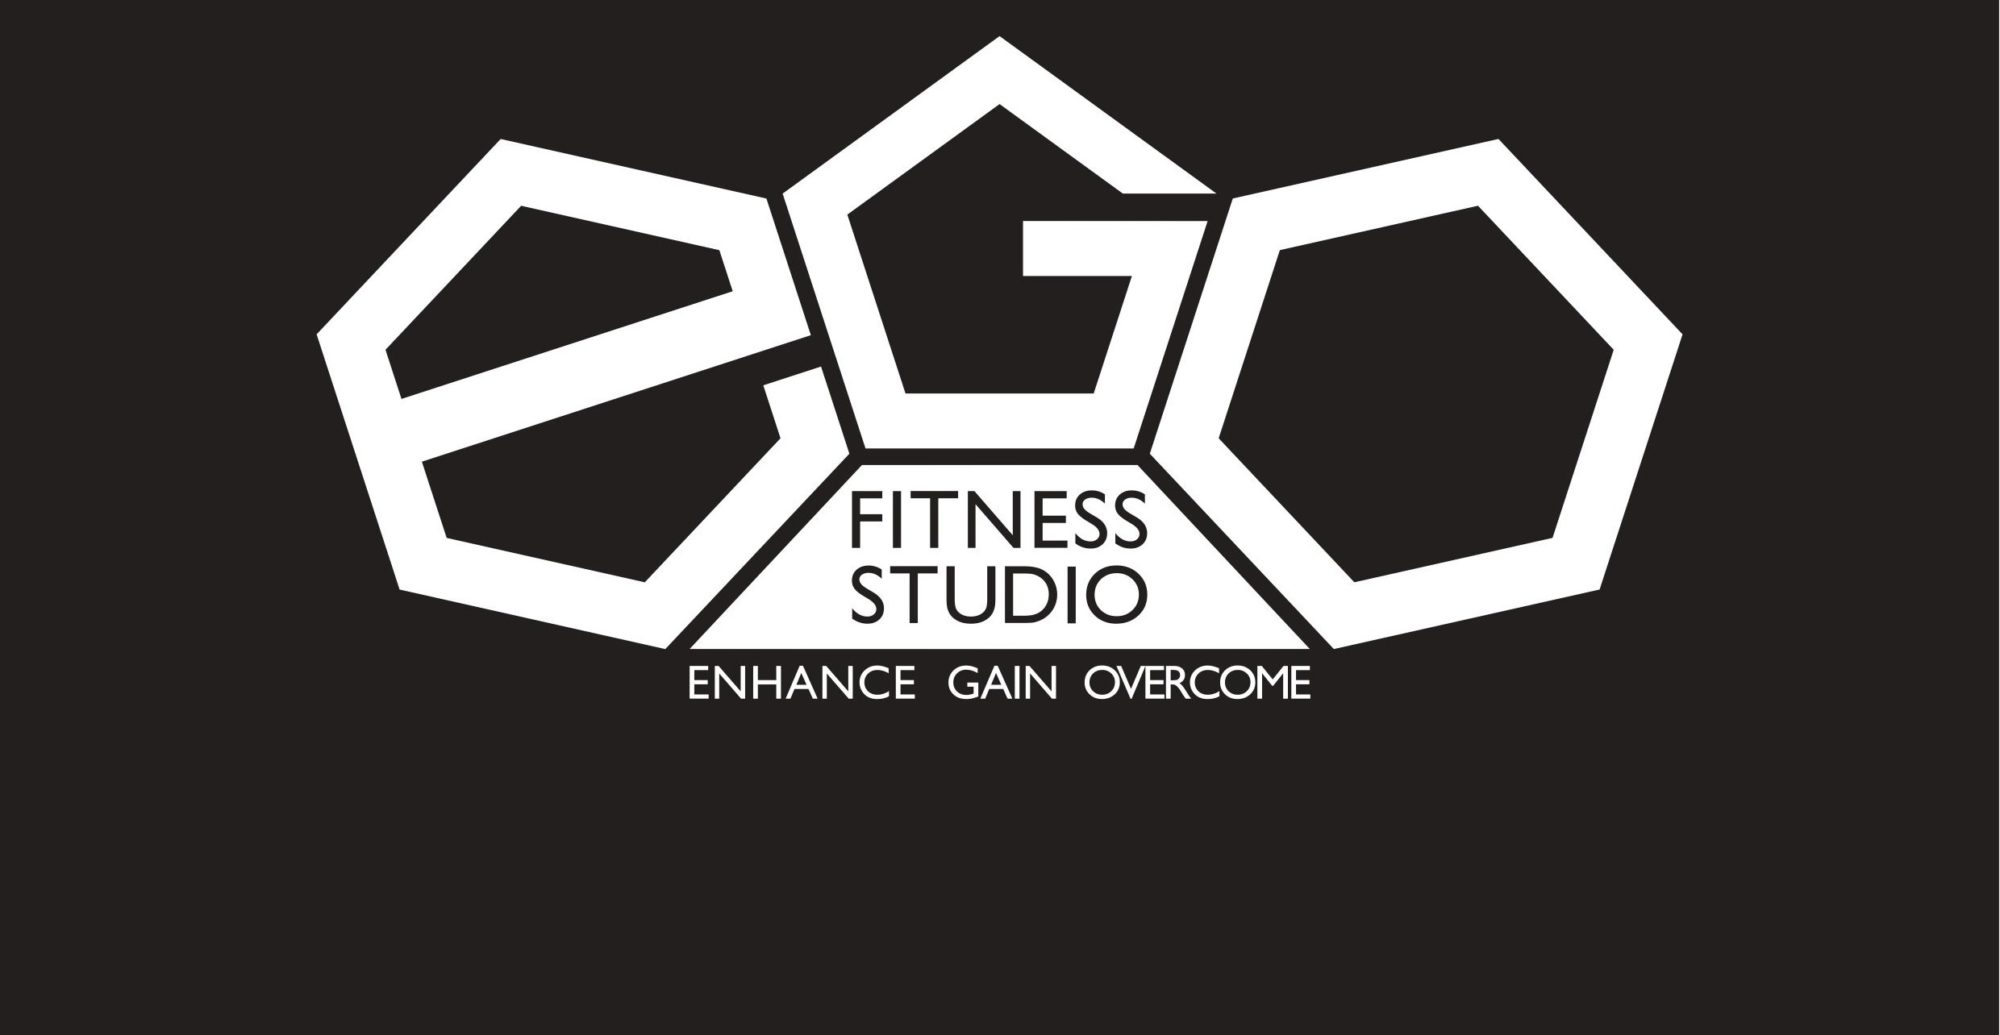 EGO FITNESS STUDIO